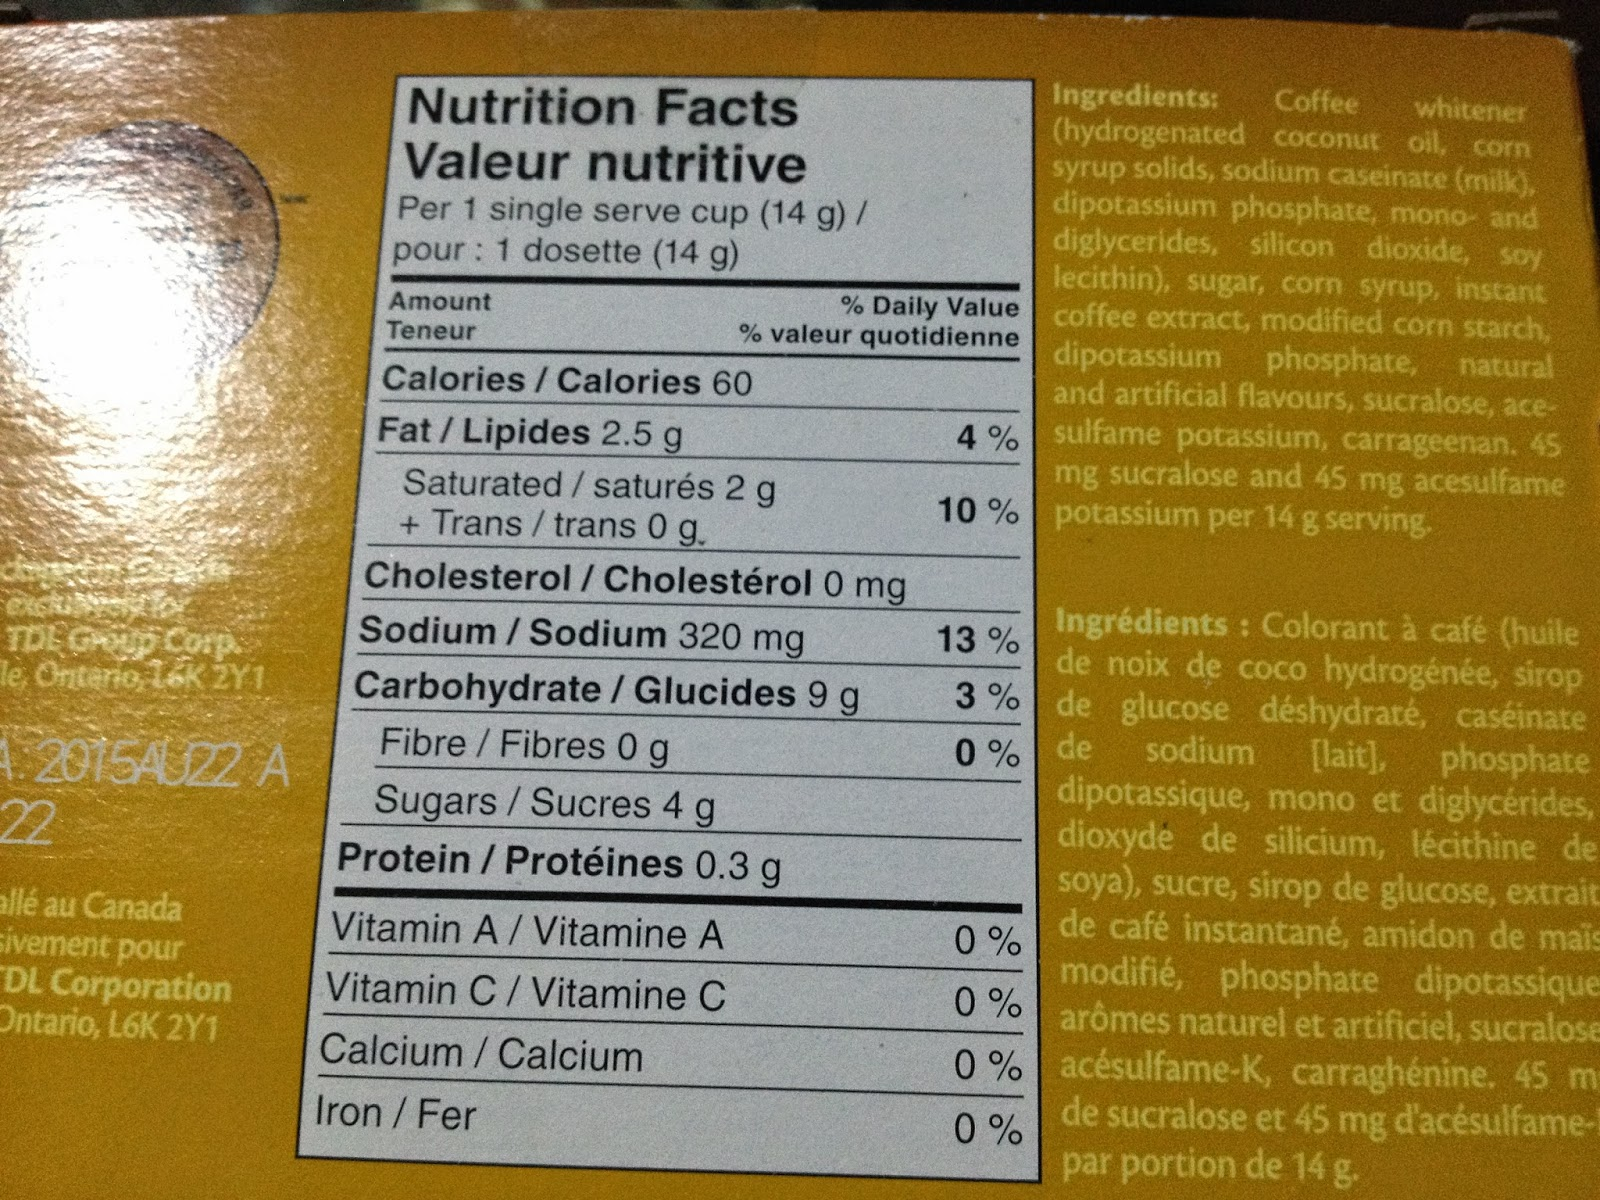 Tim Horton's French Vanilla Nutrition Facts and Ingredients List